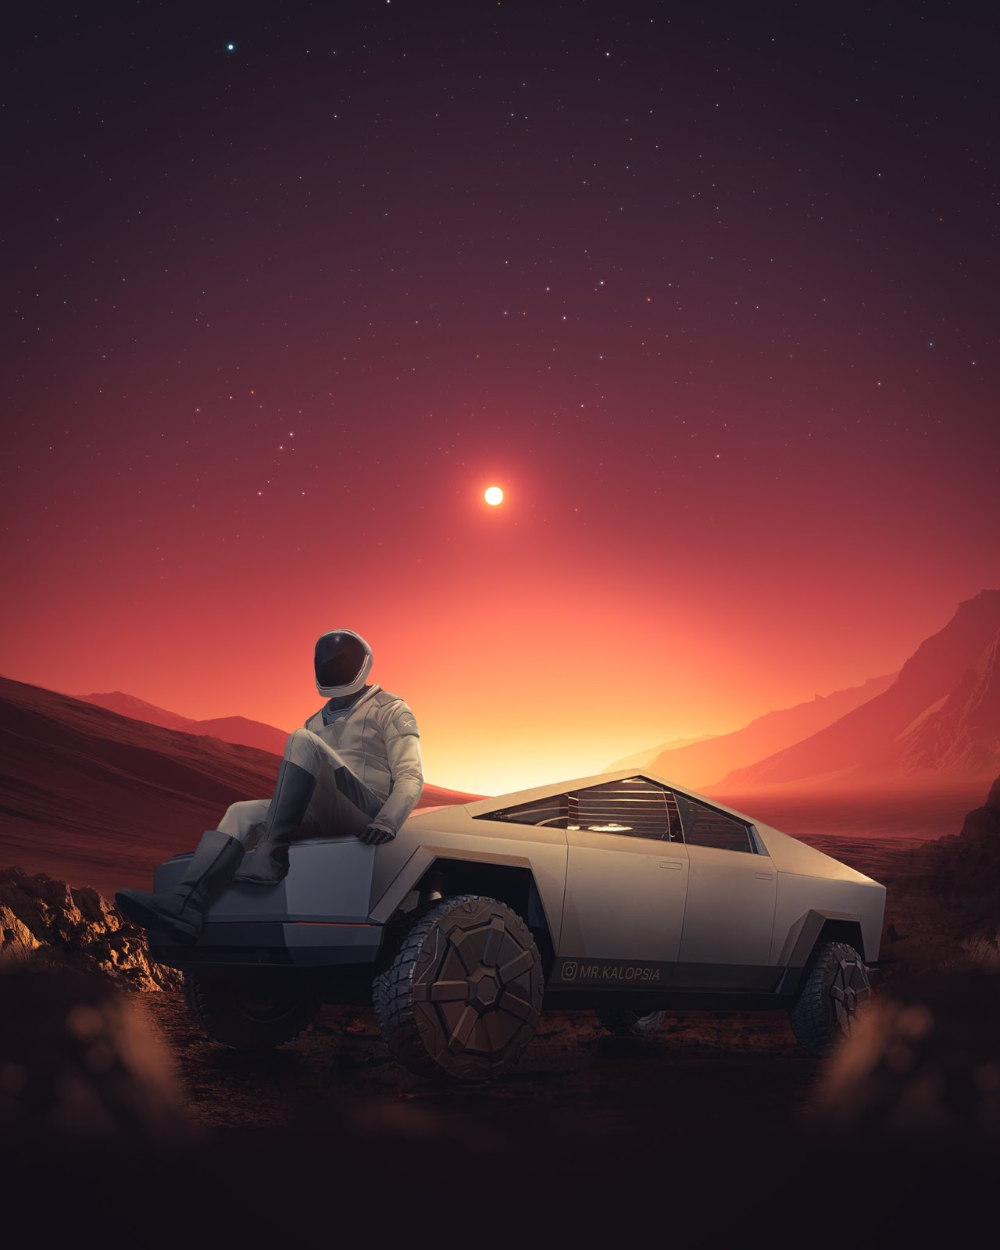 Starman resting at his Tesla Cybertruck on Mars by Eashan